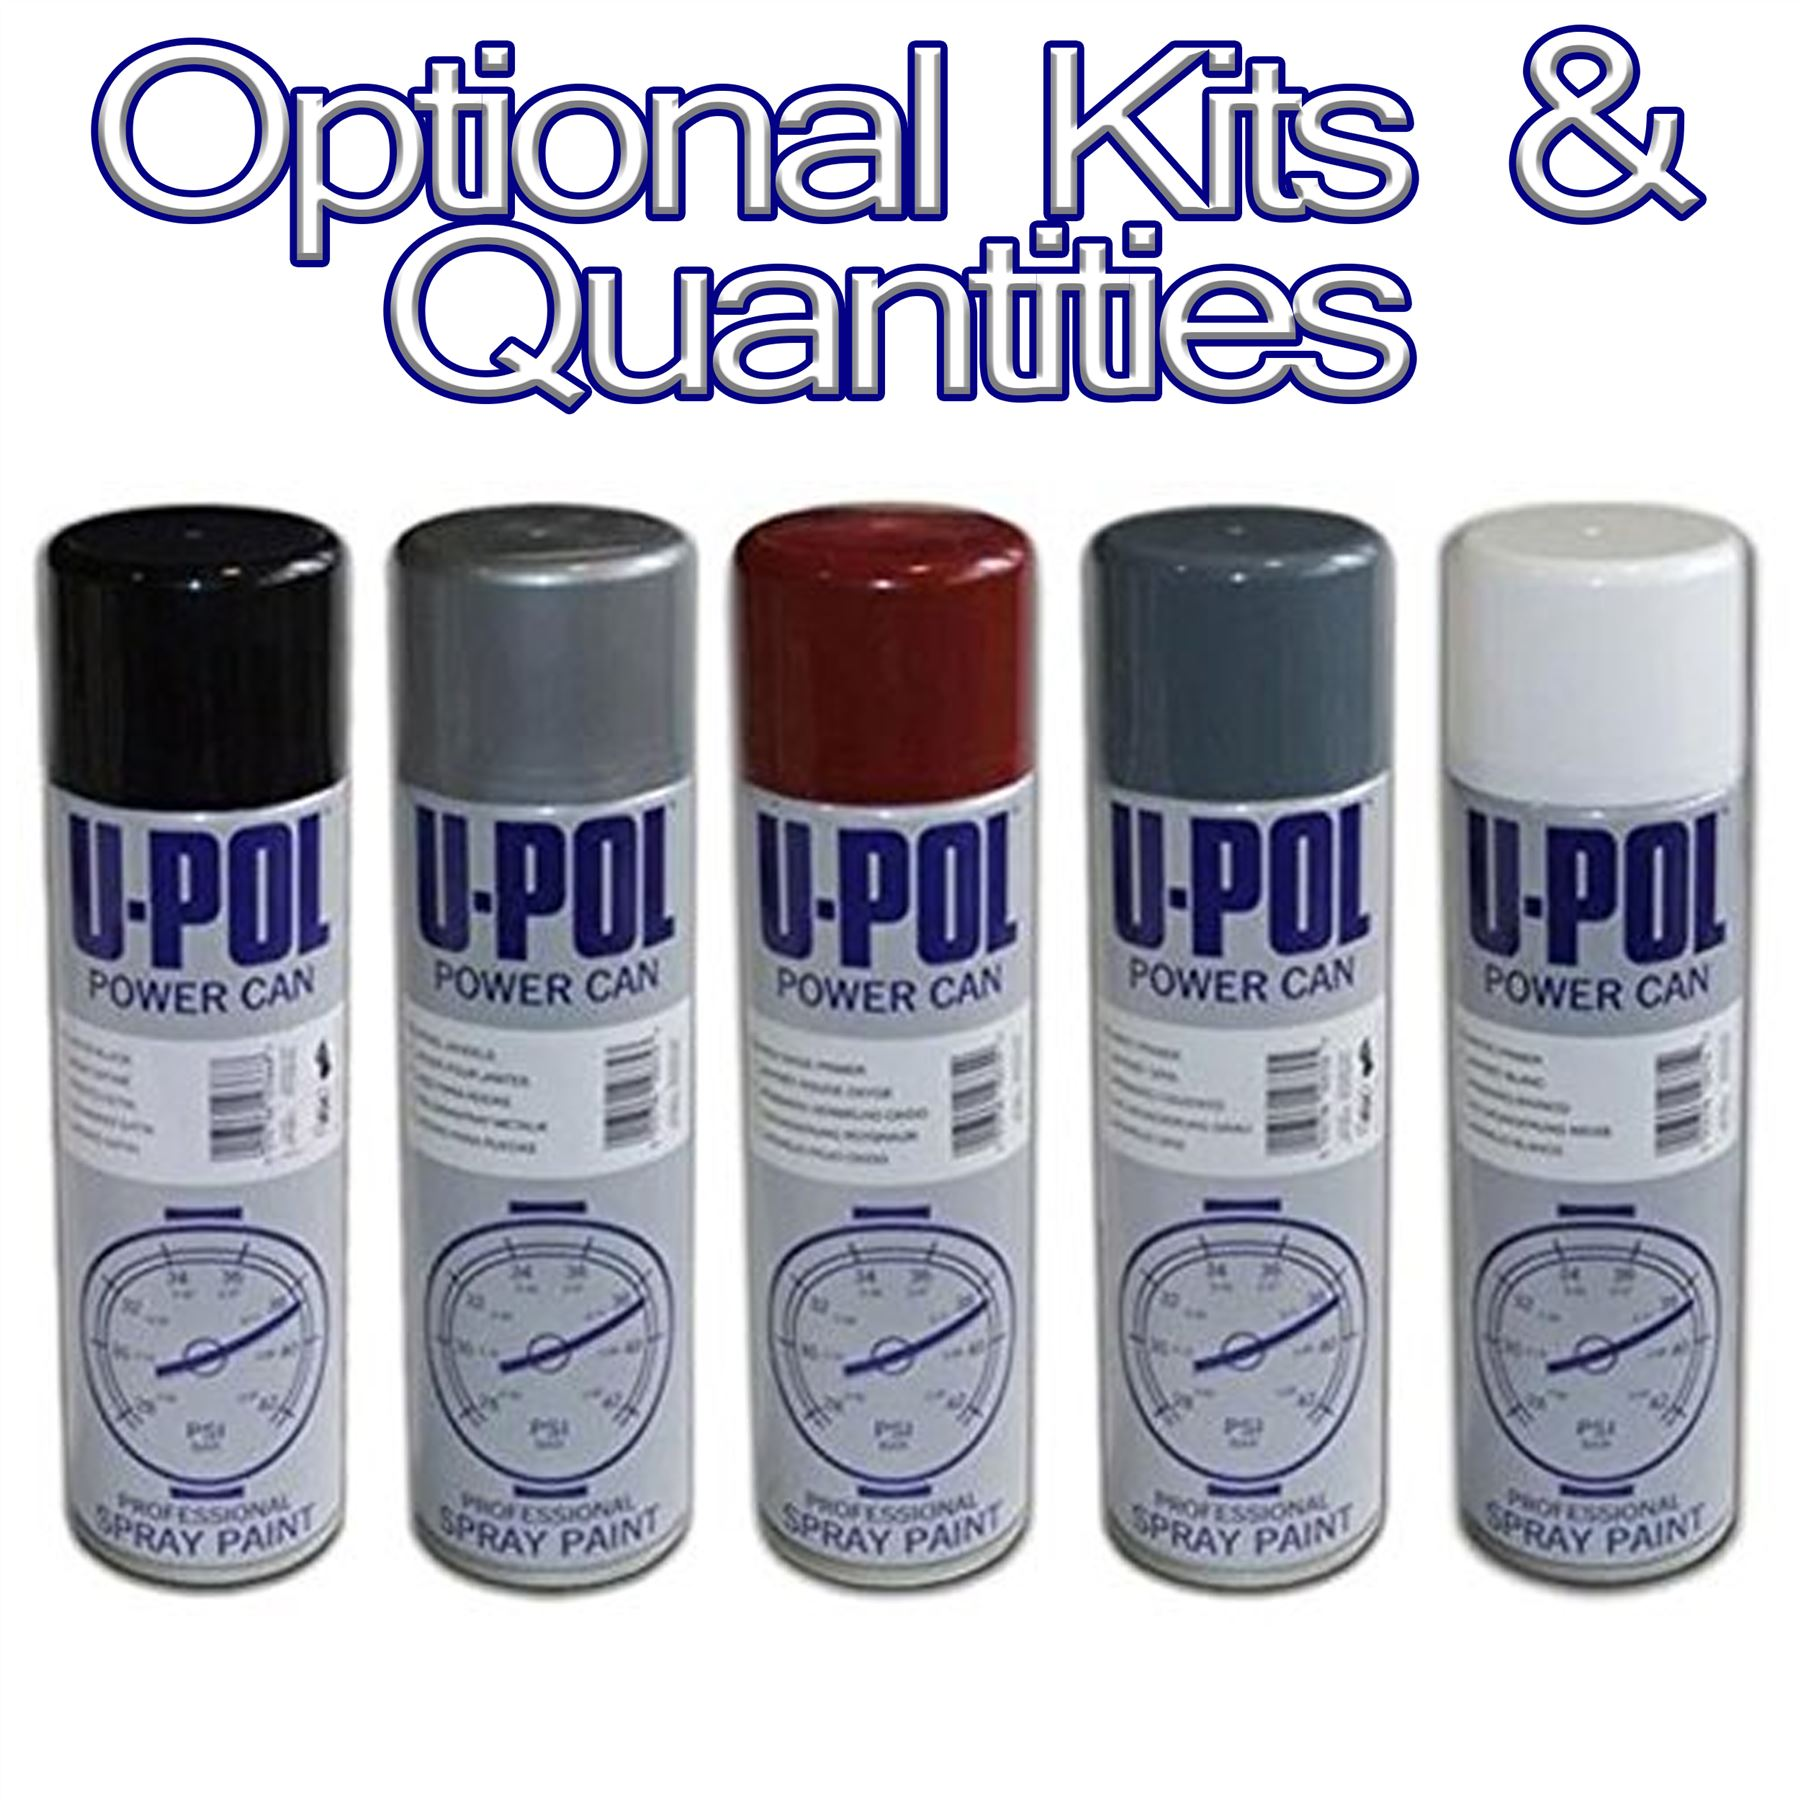 U Pol Power Paint Spray Cans Paints Primers Grey Black White Red Matt Gloss Ebay